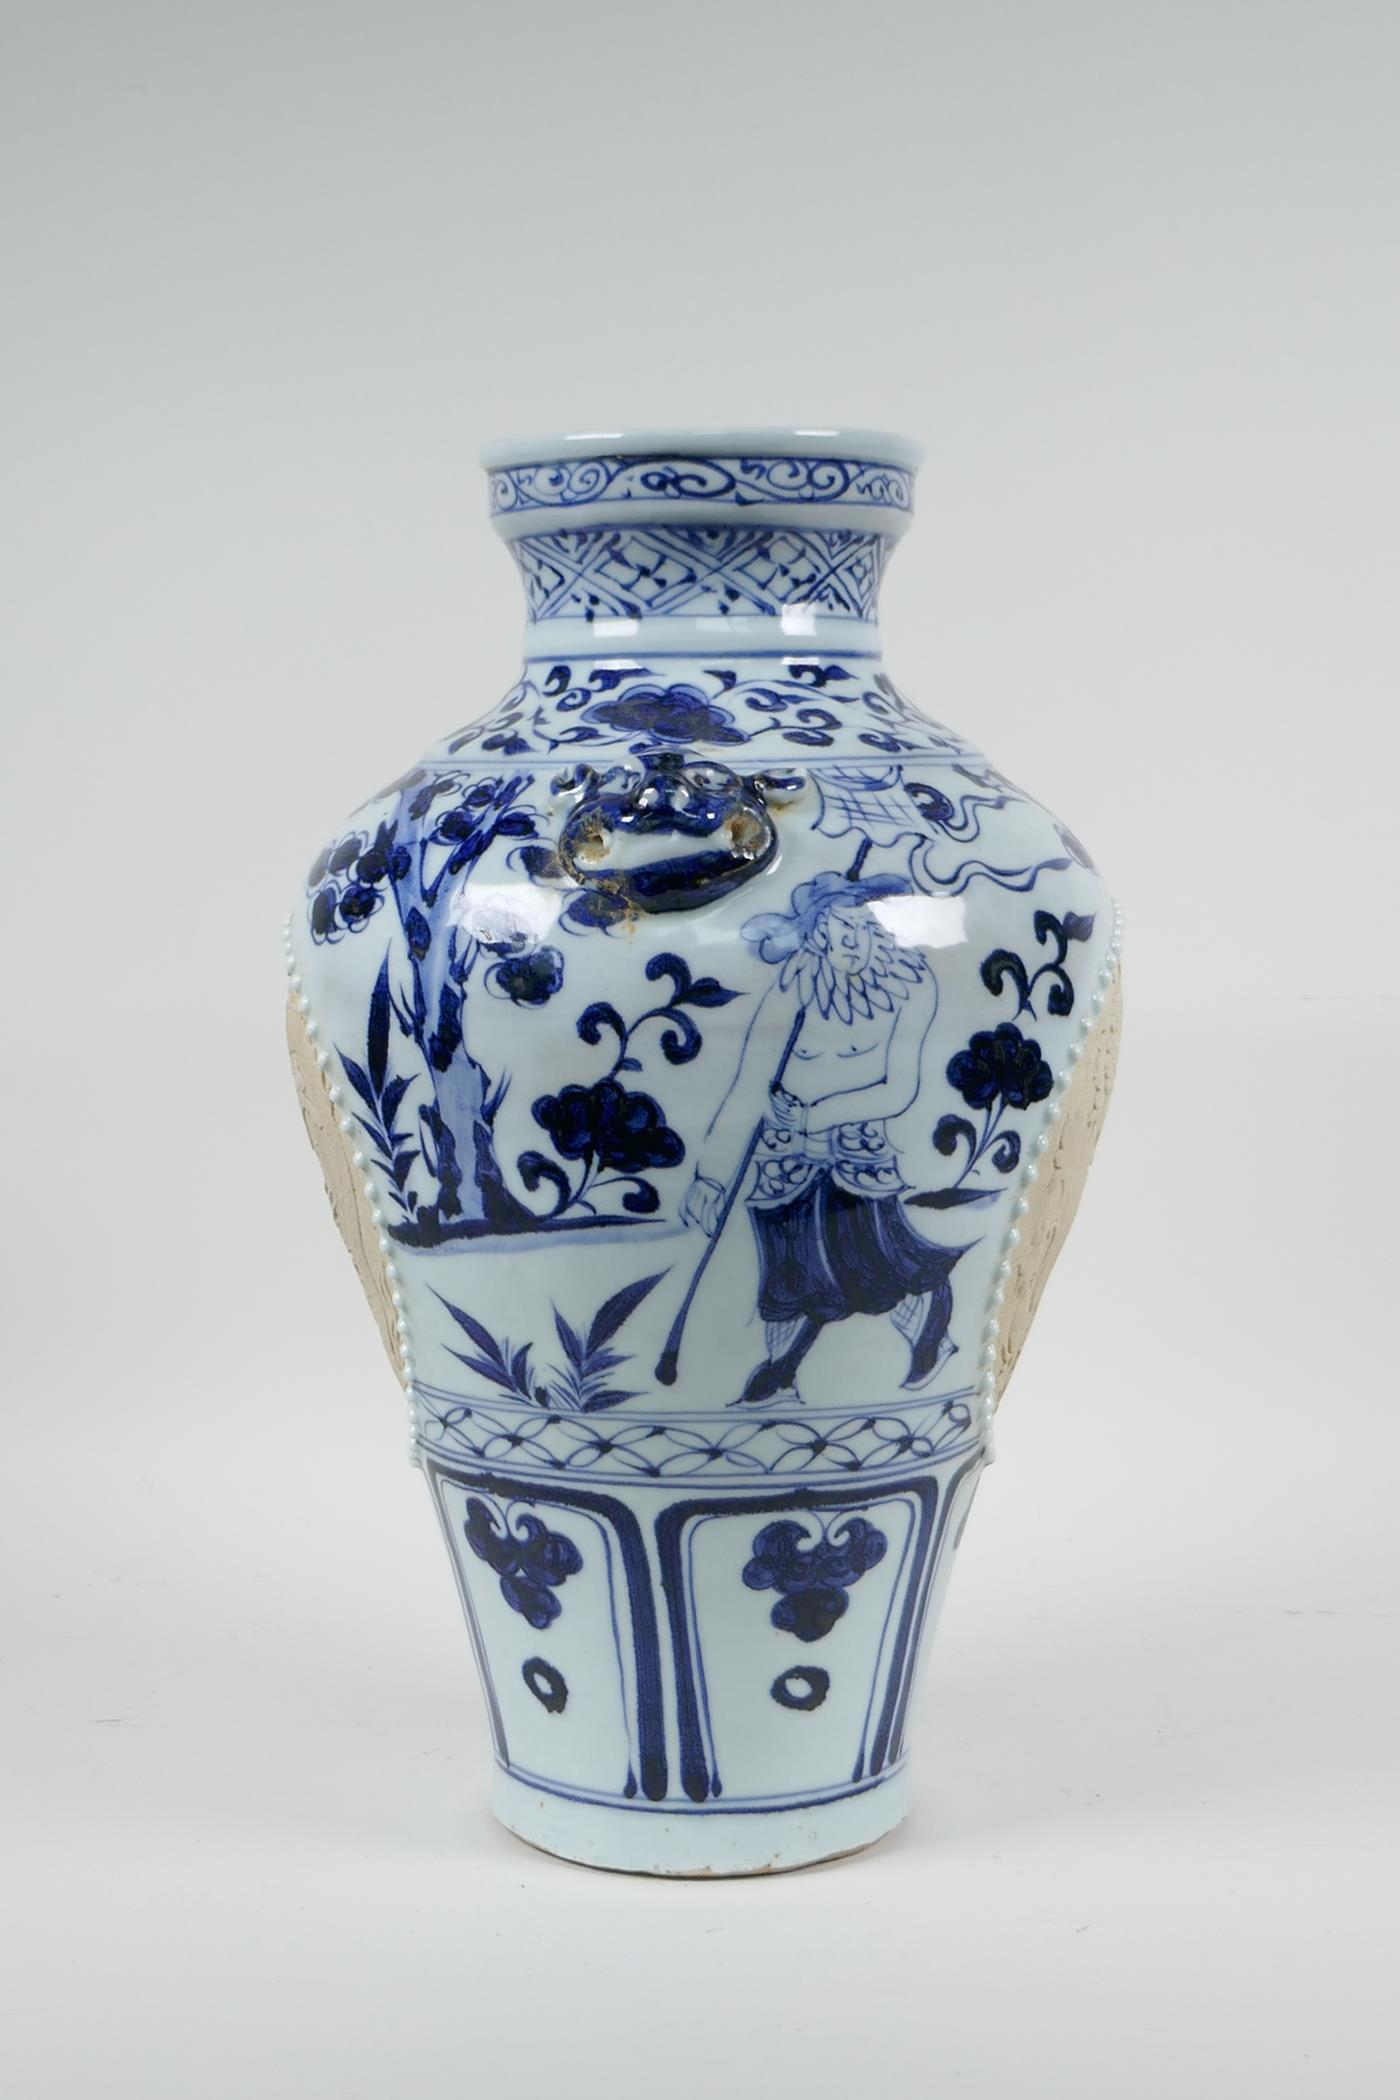 A Chinese blue and white porcelain vase with two lion mask handles, chased decorative panels - Image 6 of 8